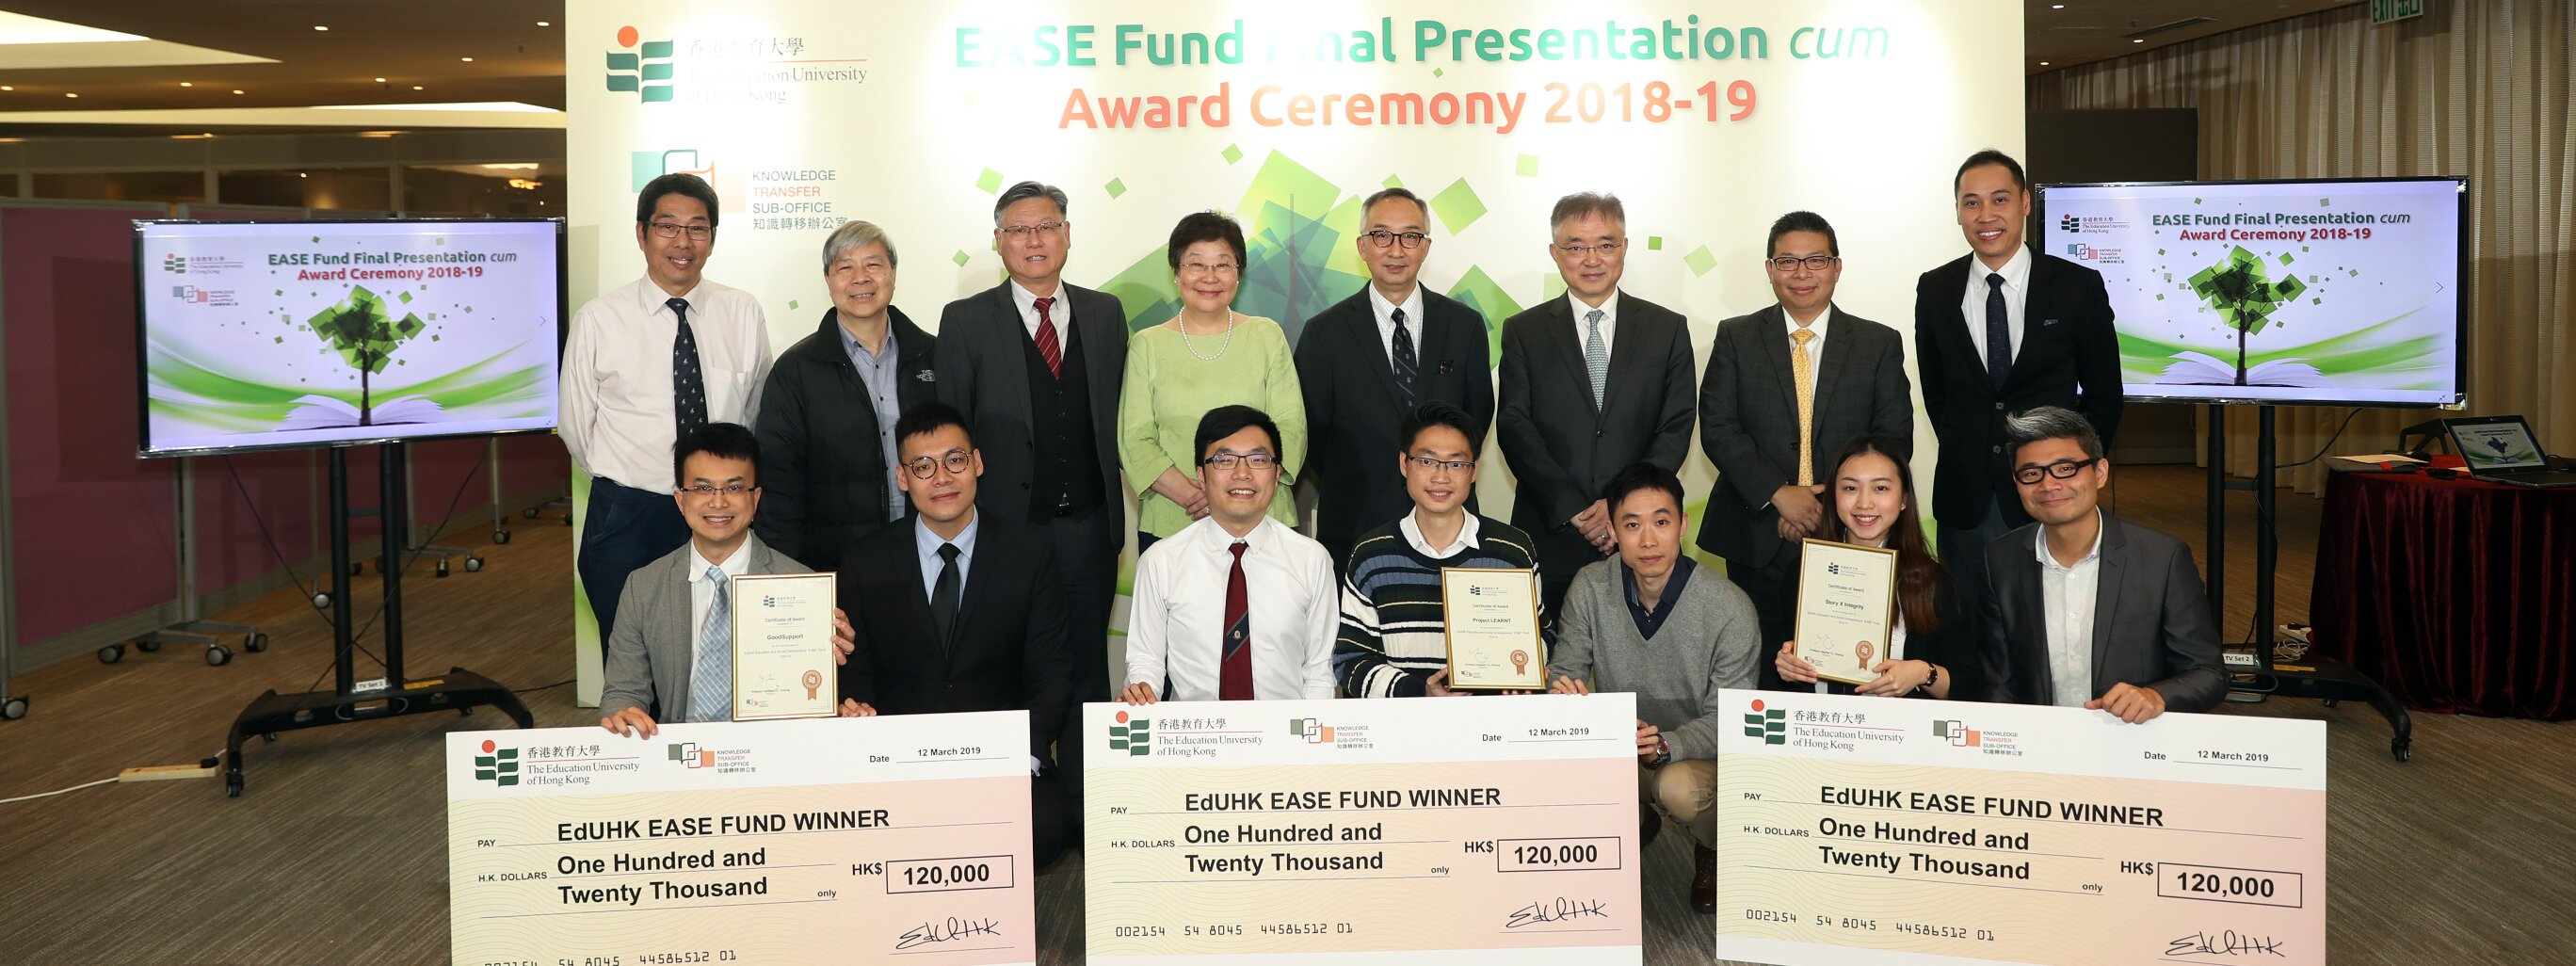 [:en EdUHK's EASE Fund Nurtures First Batch of Startups  教大EASE Fund培育首批初创企业